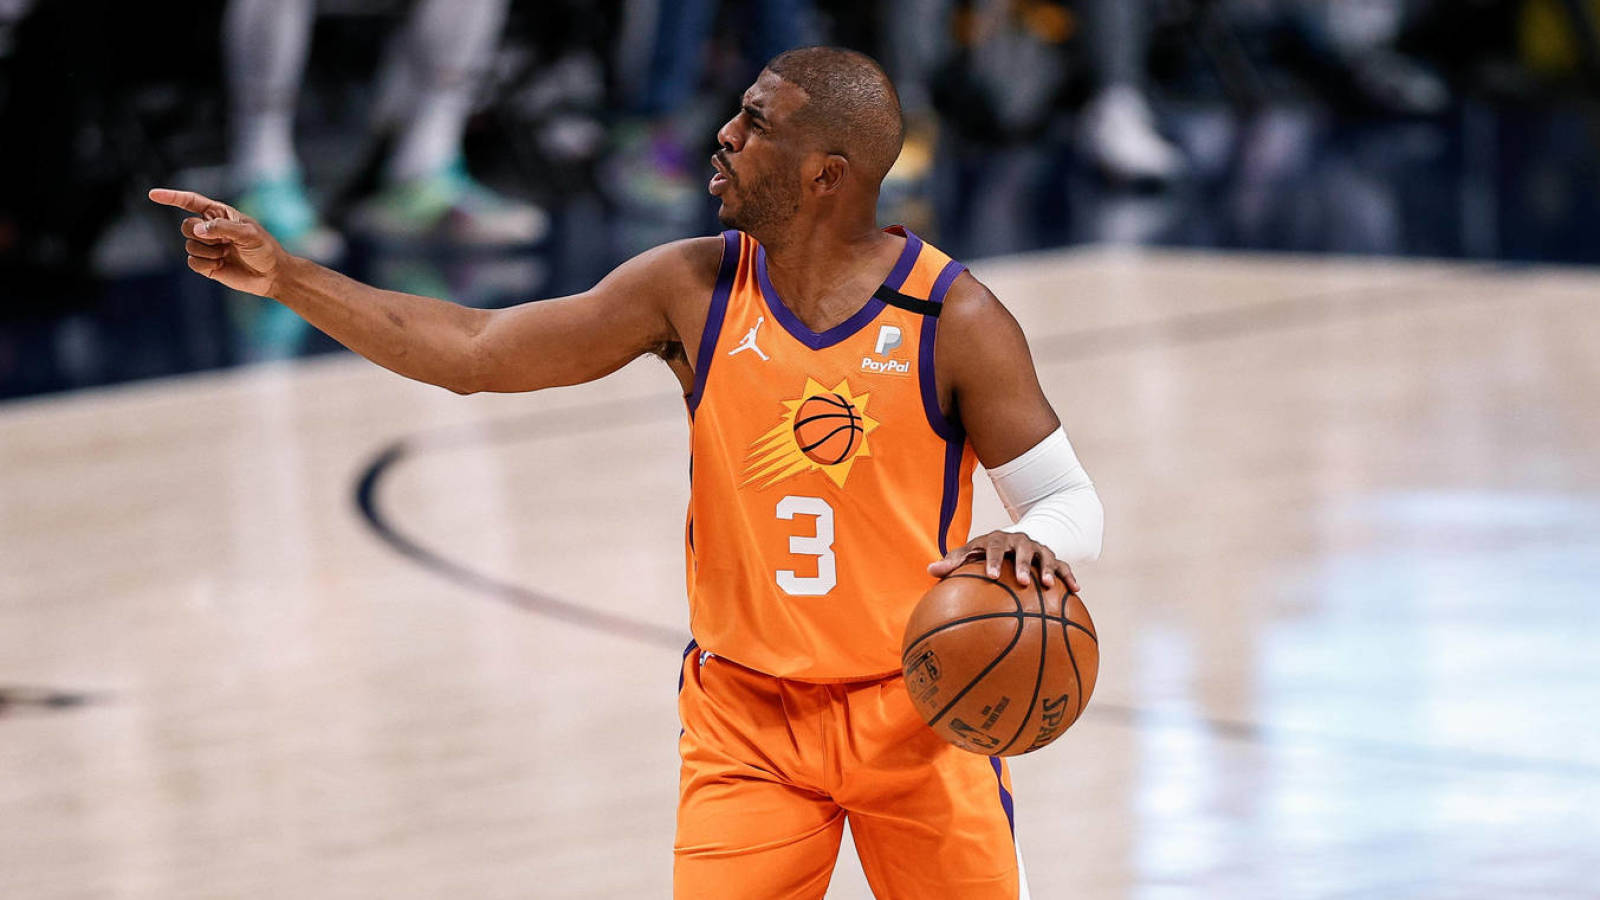 Suns Chris Paul Enters COVID-19 Health and Safety Protocols